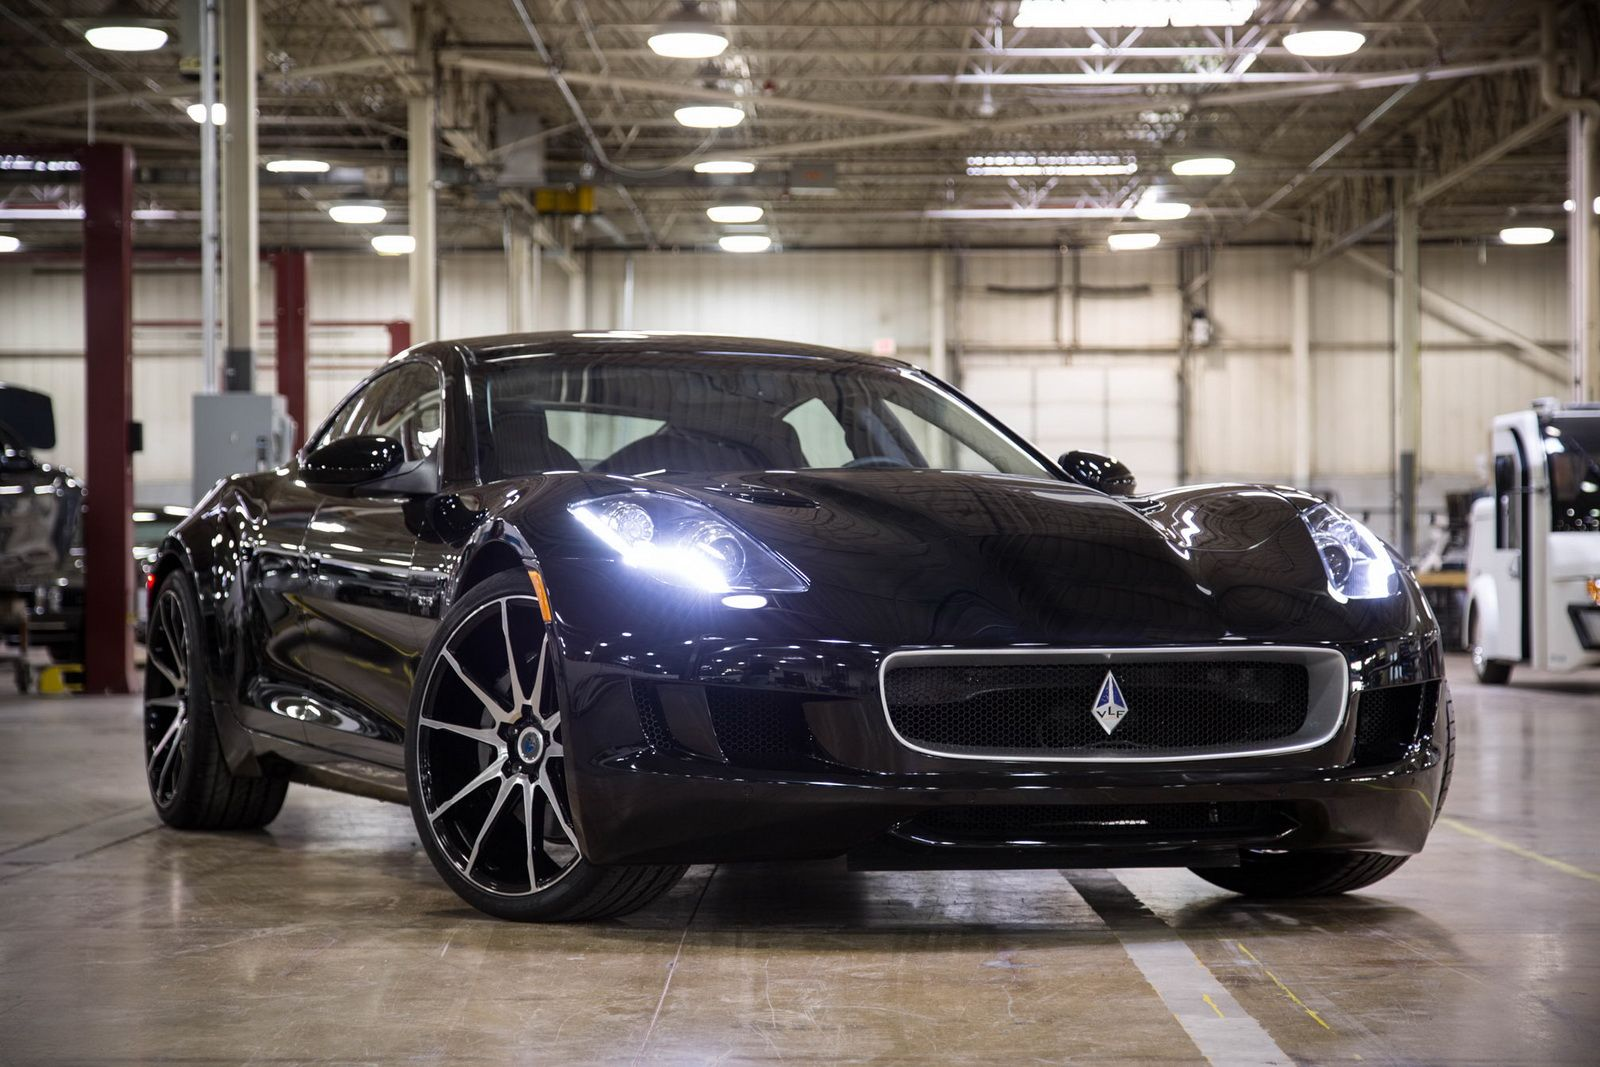 2017 Vlf Destino Takes The Fisker Karma To New Grounds In Detroit Carscoops Sports Car Car Luxury Cars